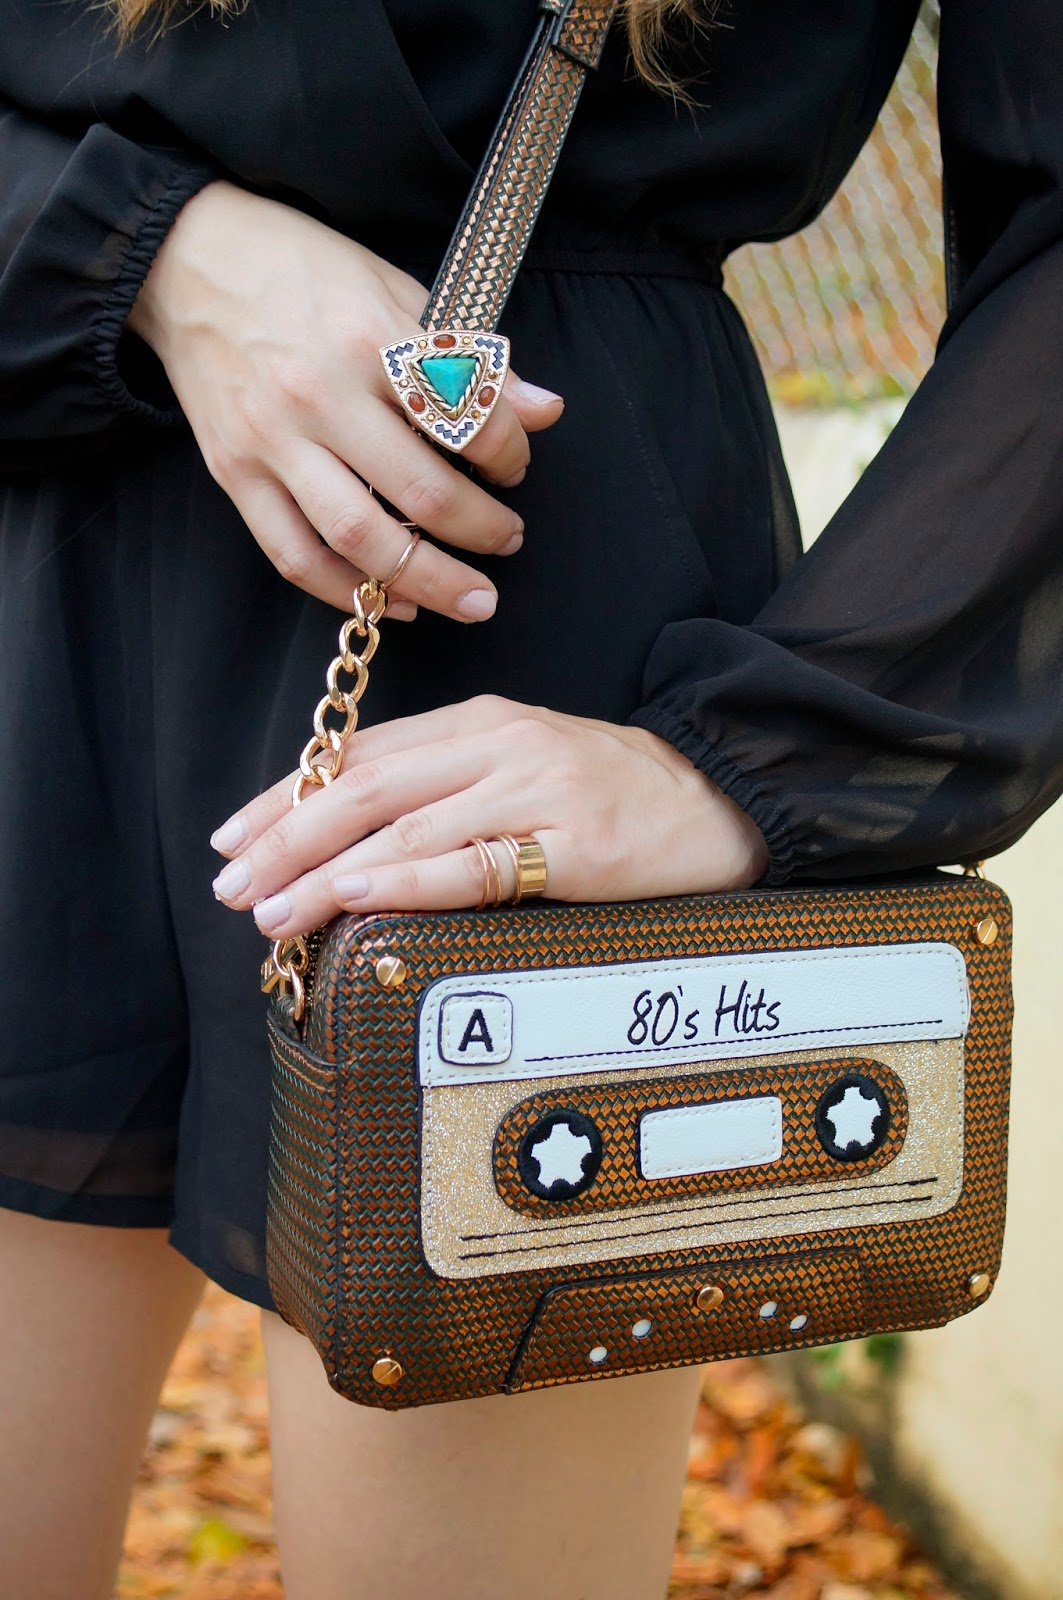 How adorable is this cassette purse!